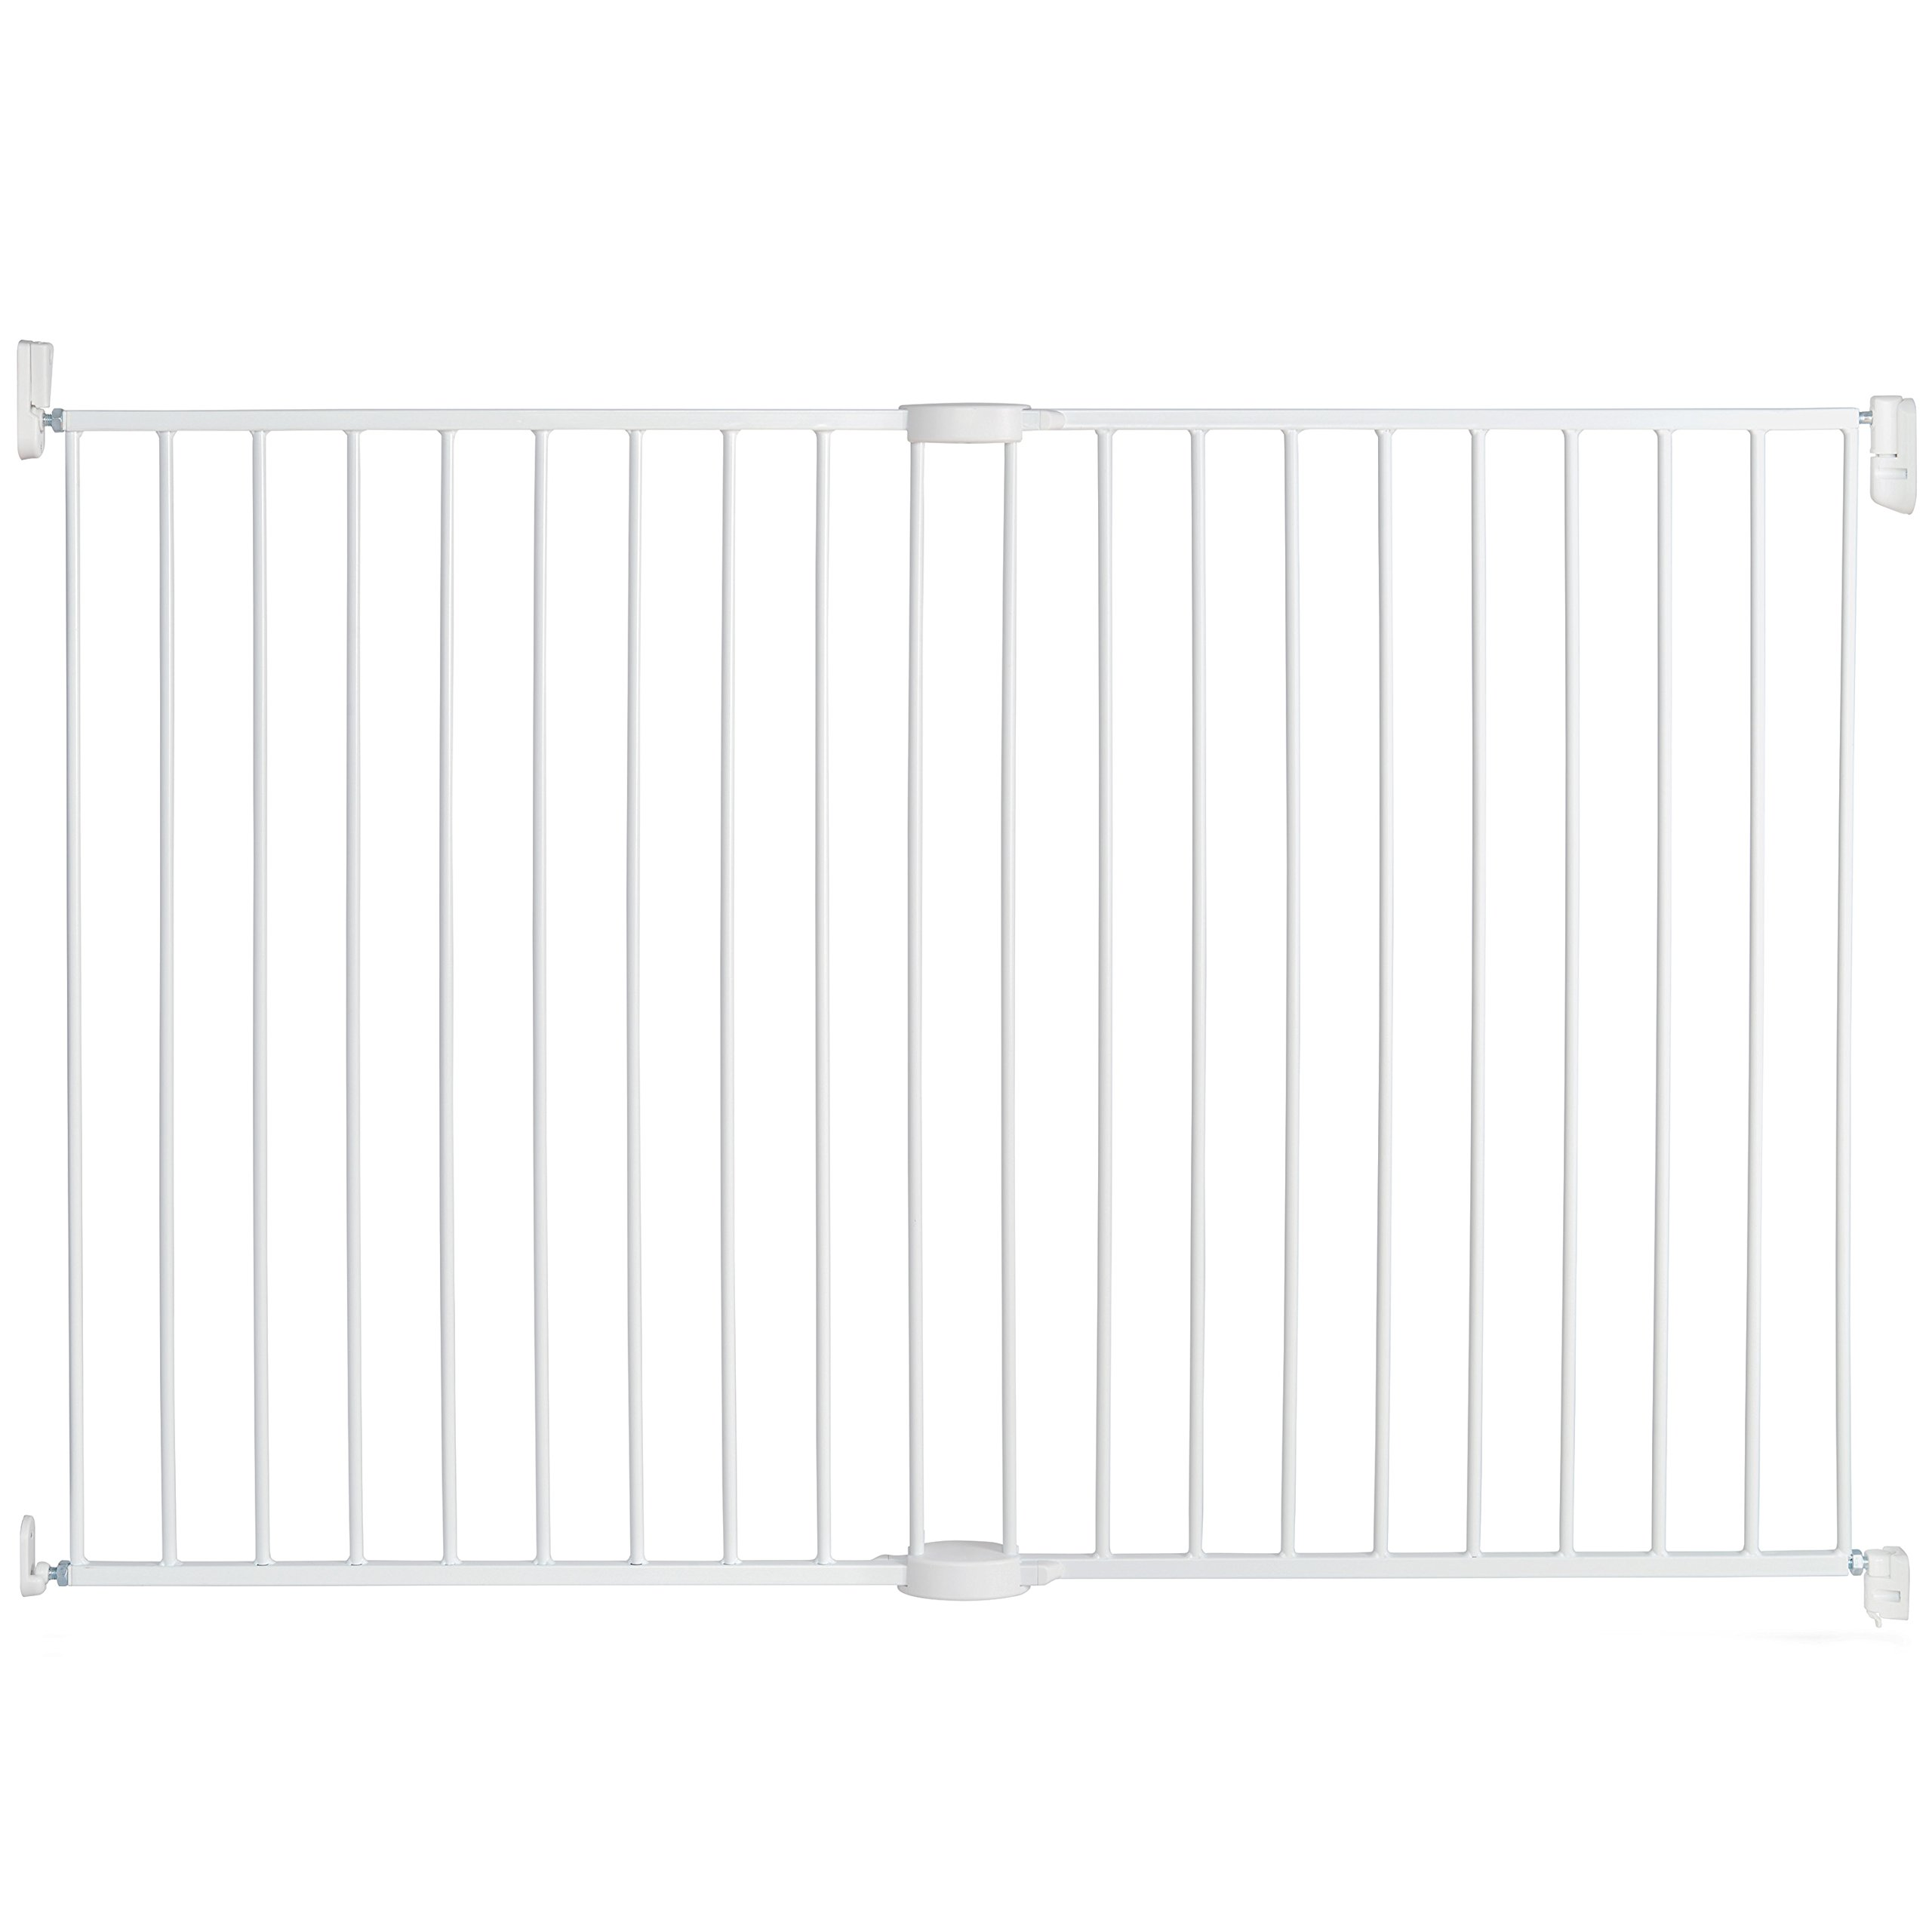 Munchkin Extending XL Tall and Wide Hardware Baby Gate, Extends 33'' - 56'' Wide, White, Model MK0004